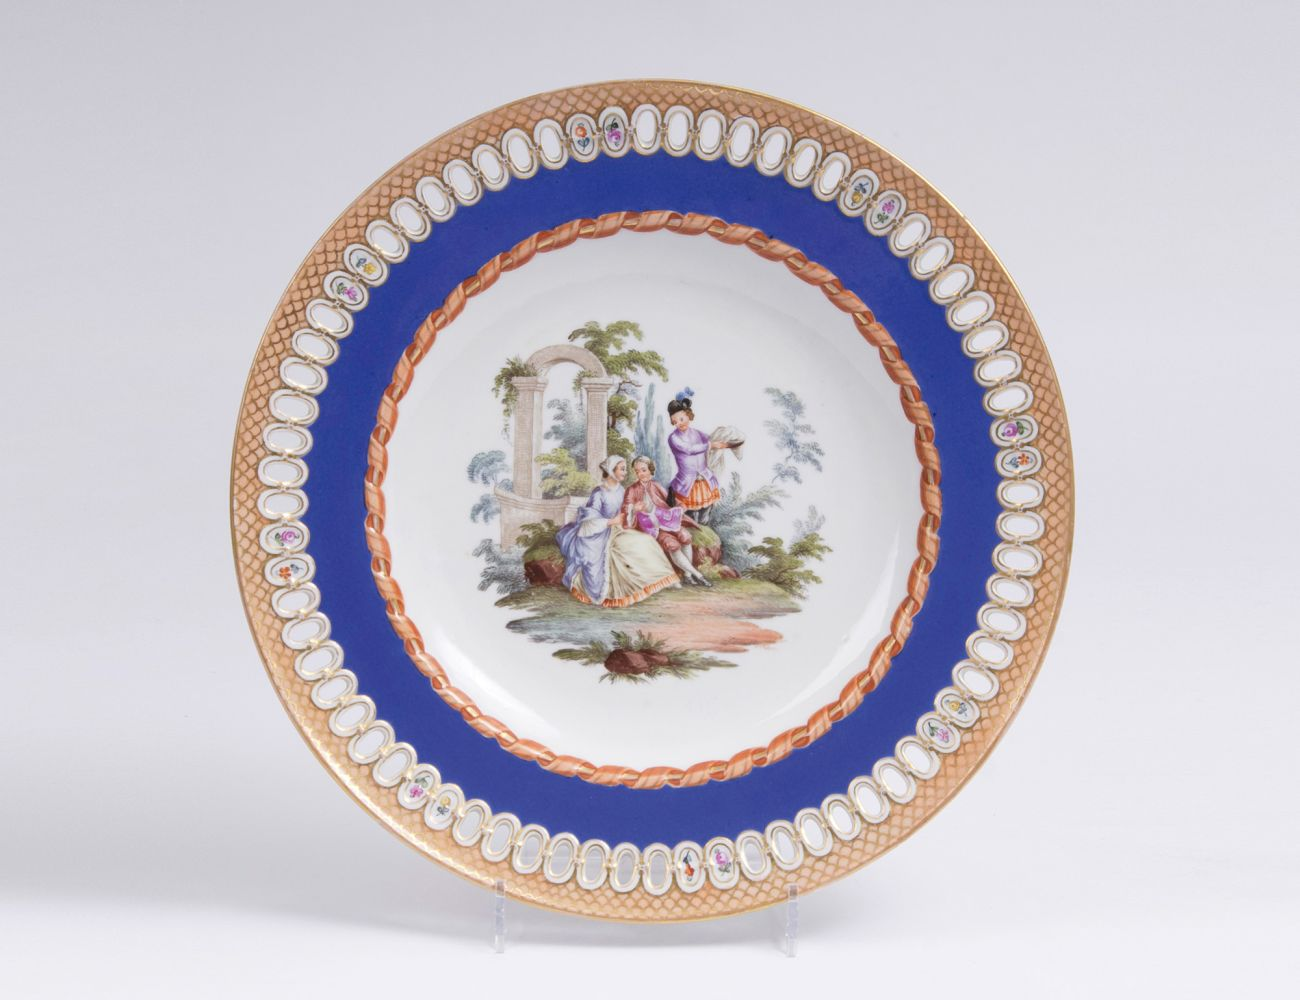 A Plate from the Service with the Blue Ribbon